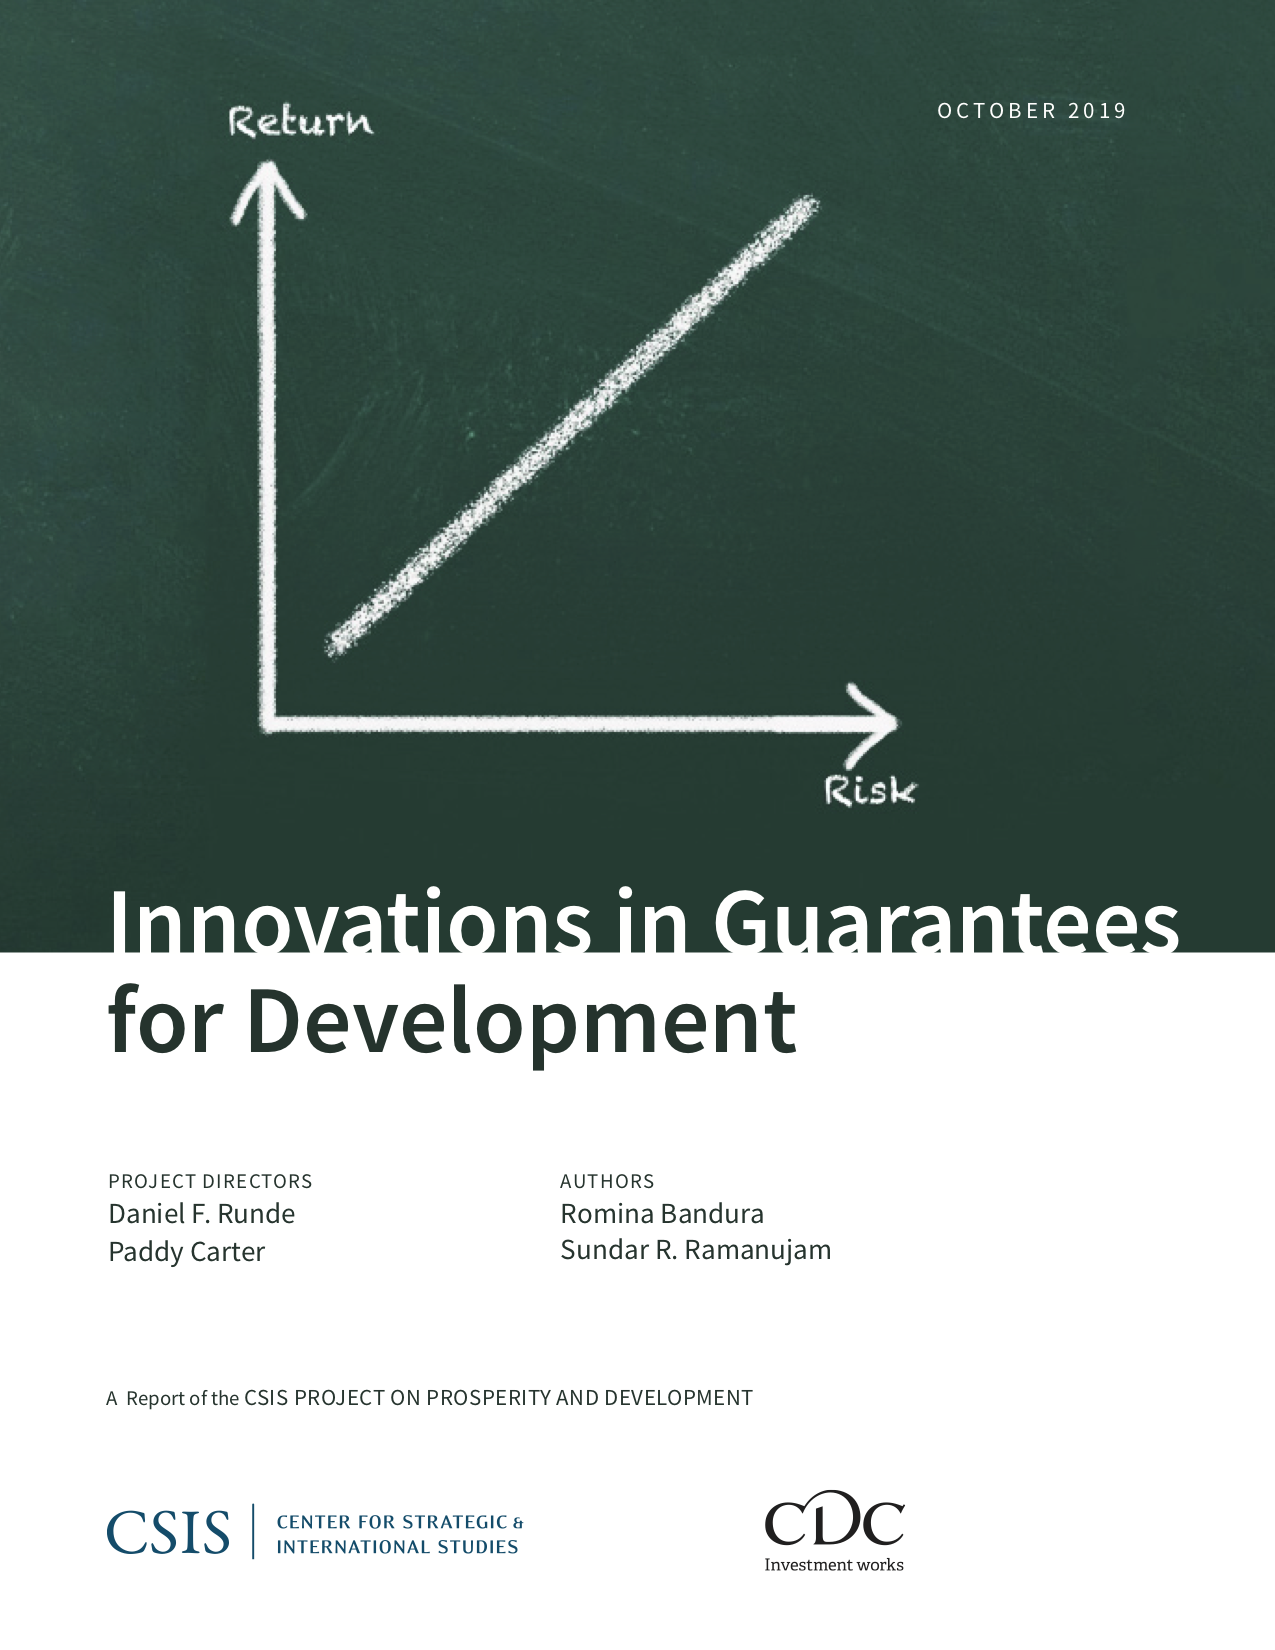 Innovations in Guarantees for Development